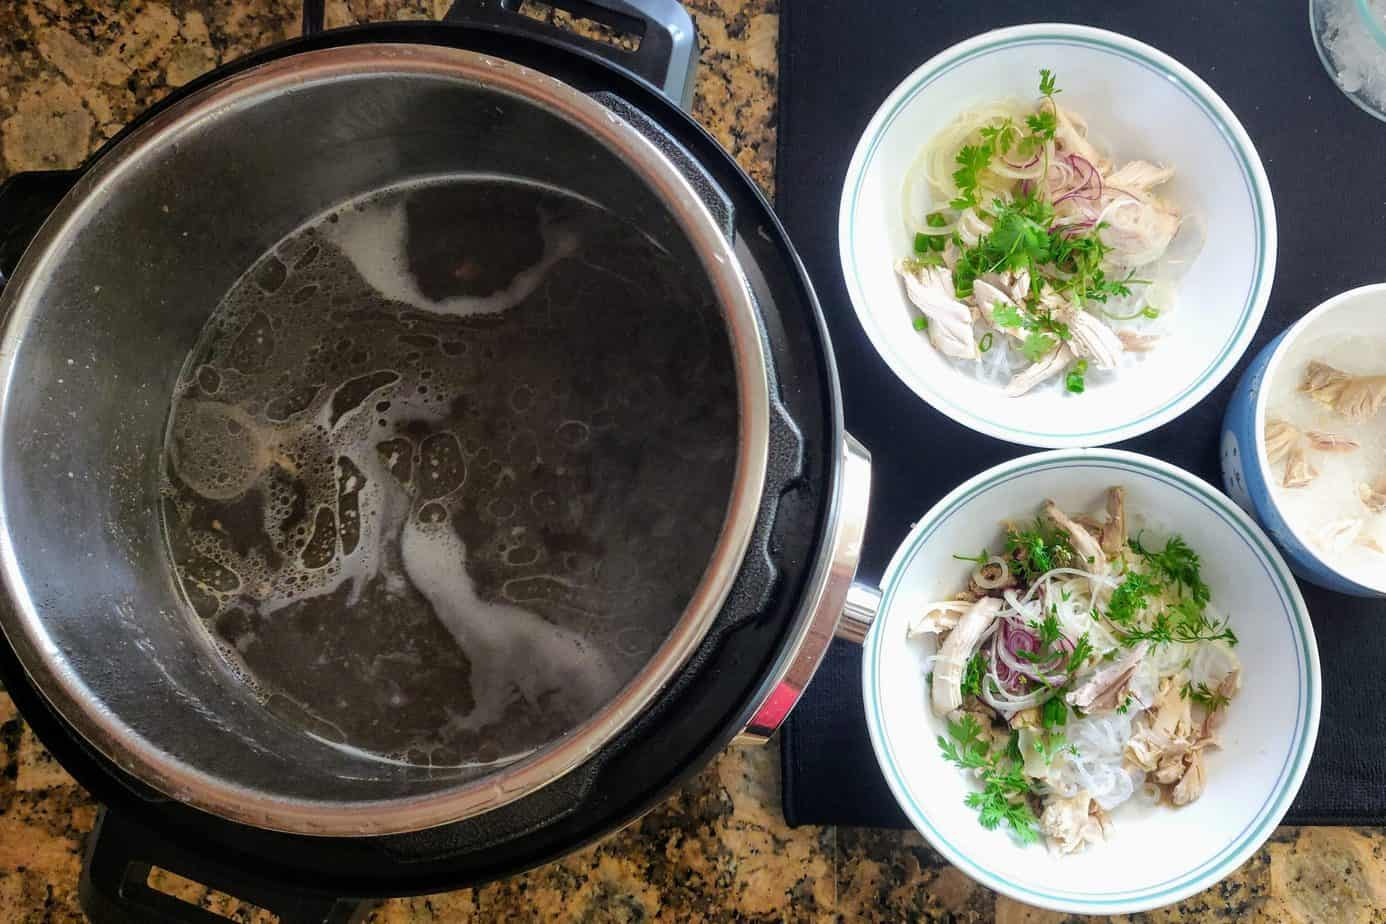 Boiling broth ready to be ladled into pho bowls